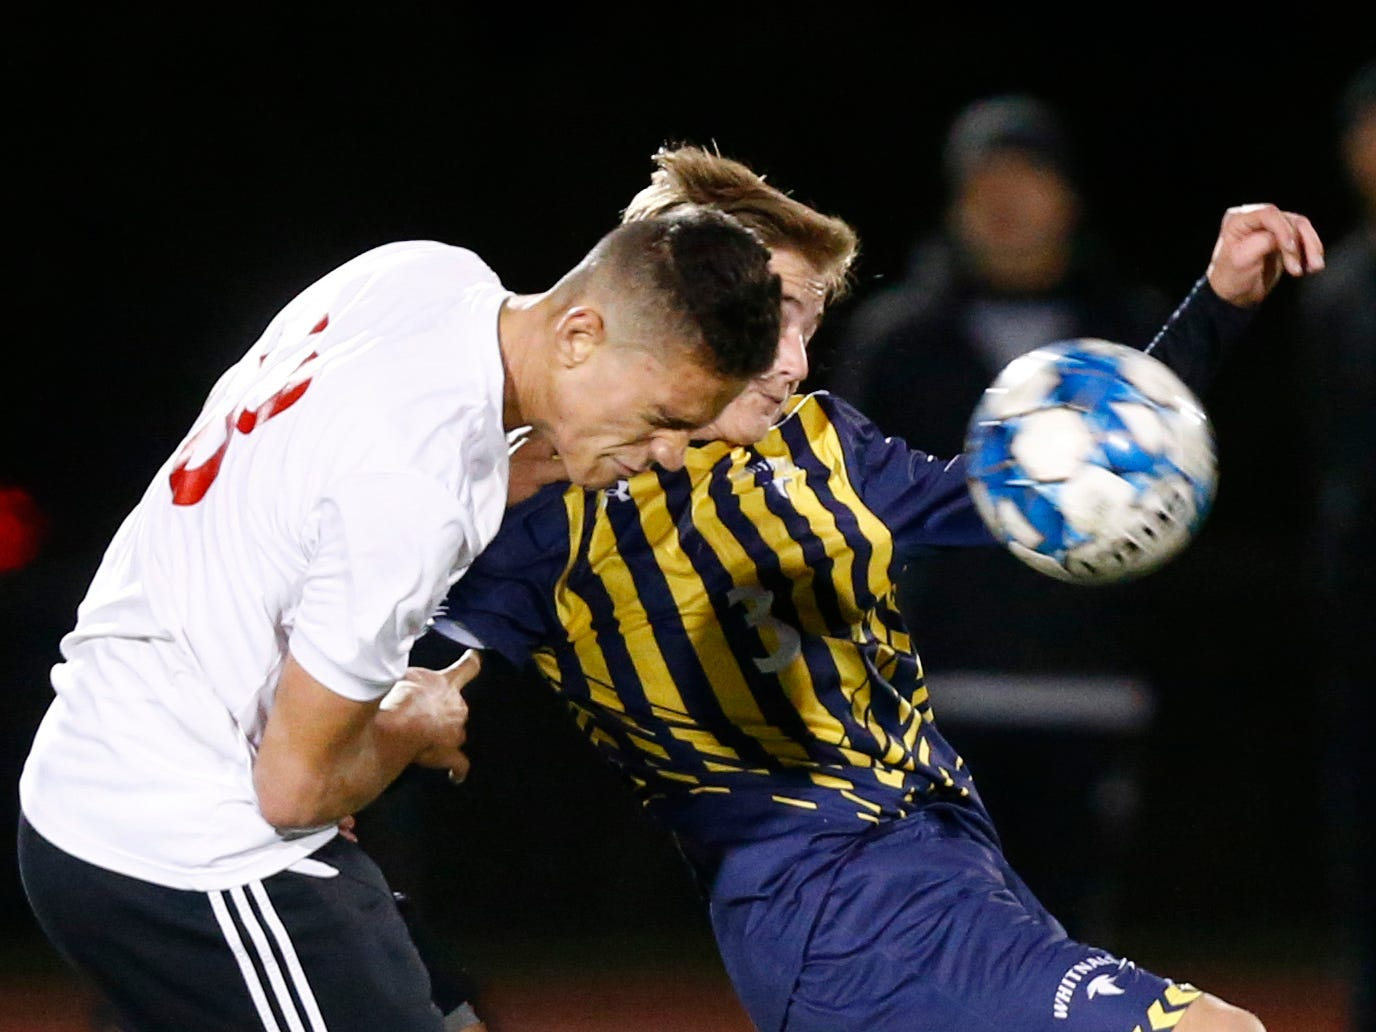 South Milwaukee's Sergio Vega and Whitnall's Kaden Norby battle for the ball during WIAA semi-regional play at Whitnall on Oct. 16.